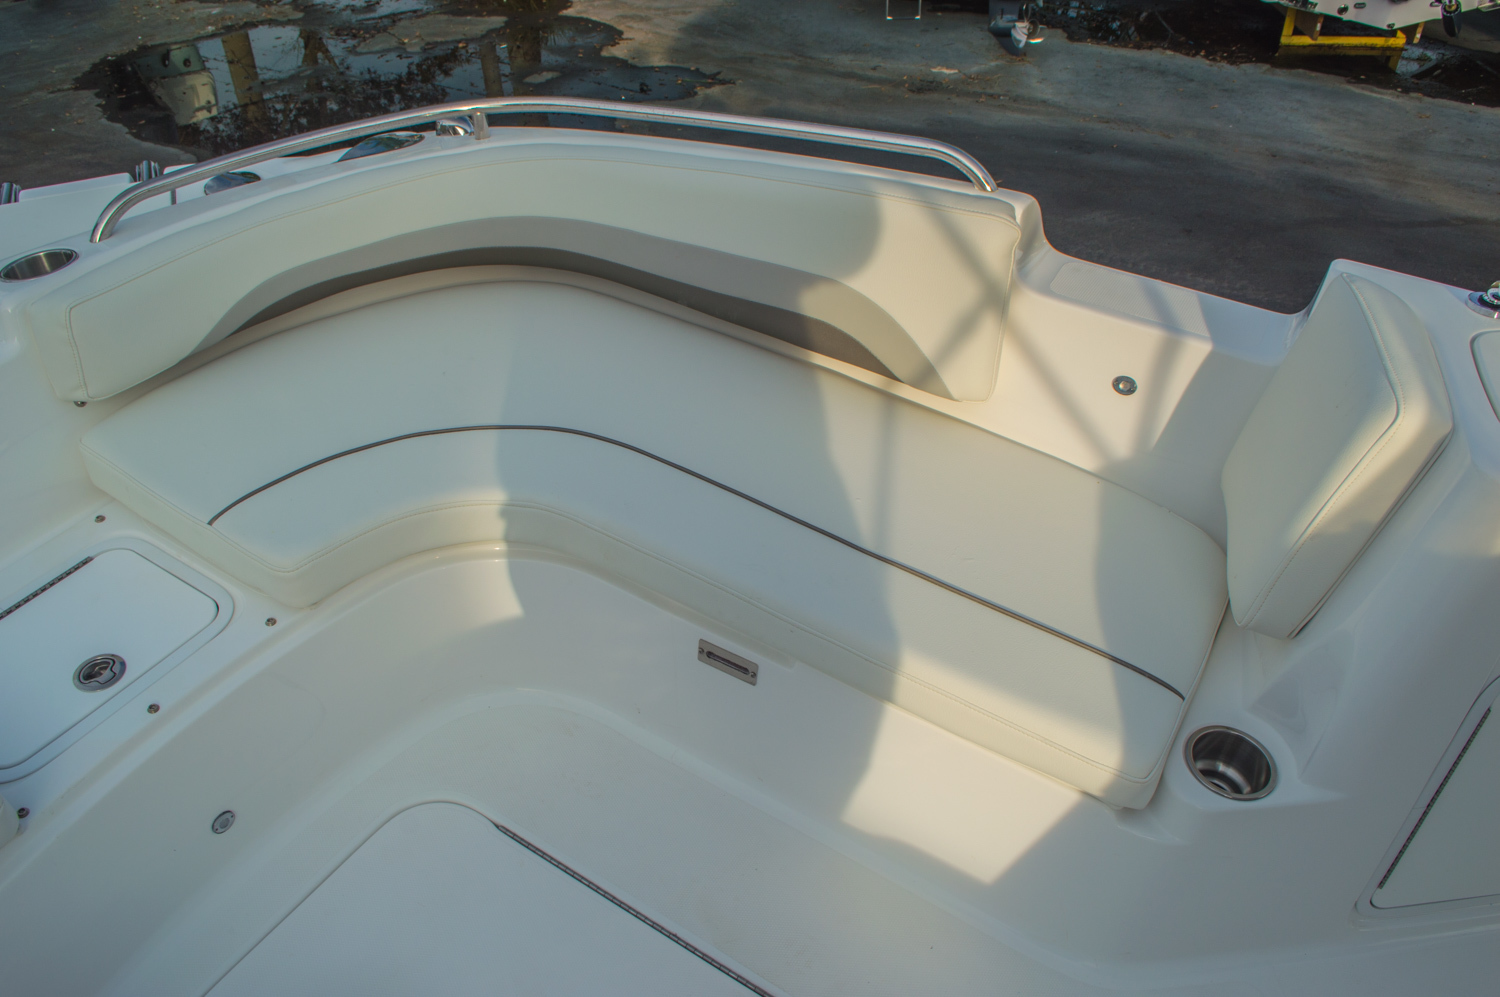 Thumbnail 48 for New 2016 Hurricane CC211 Center Consle boat for sale in West Palm Beach, FL